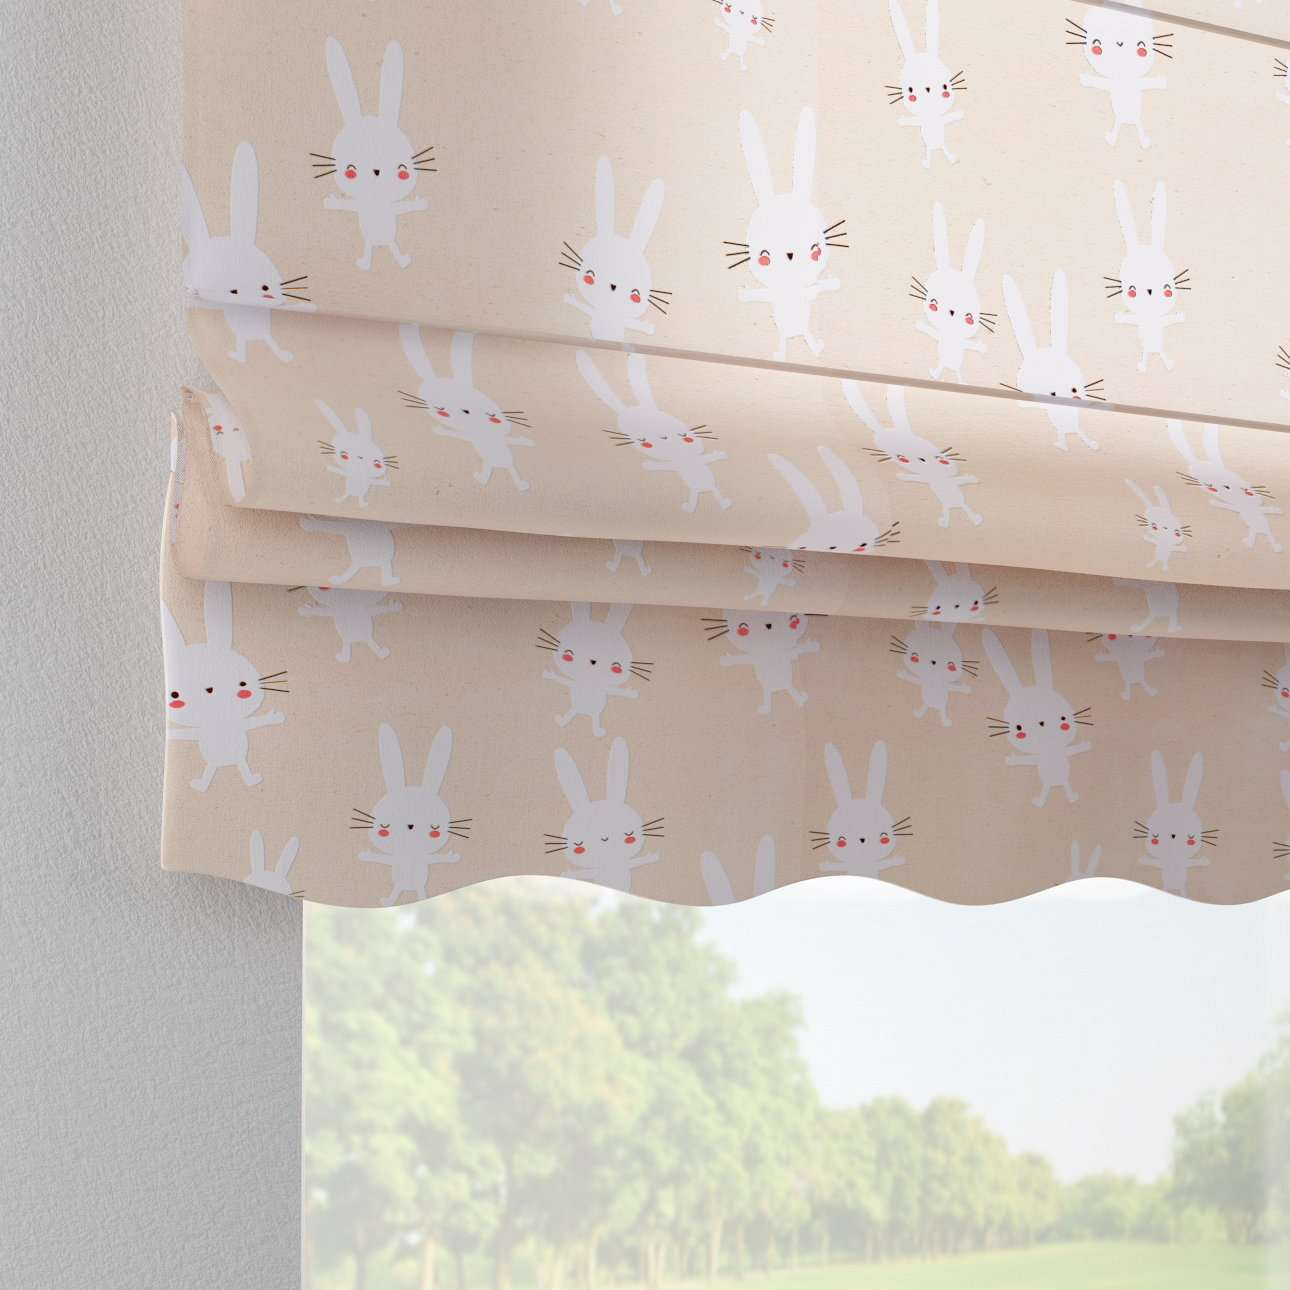 Florence roman blind  80 x 170 cm (31.5 x 67 inch) in collection Apanona, fabric: 151-00